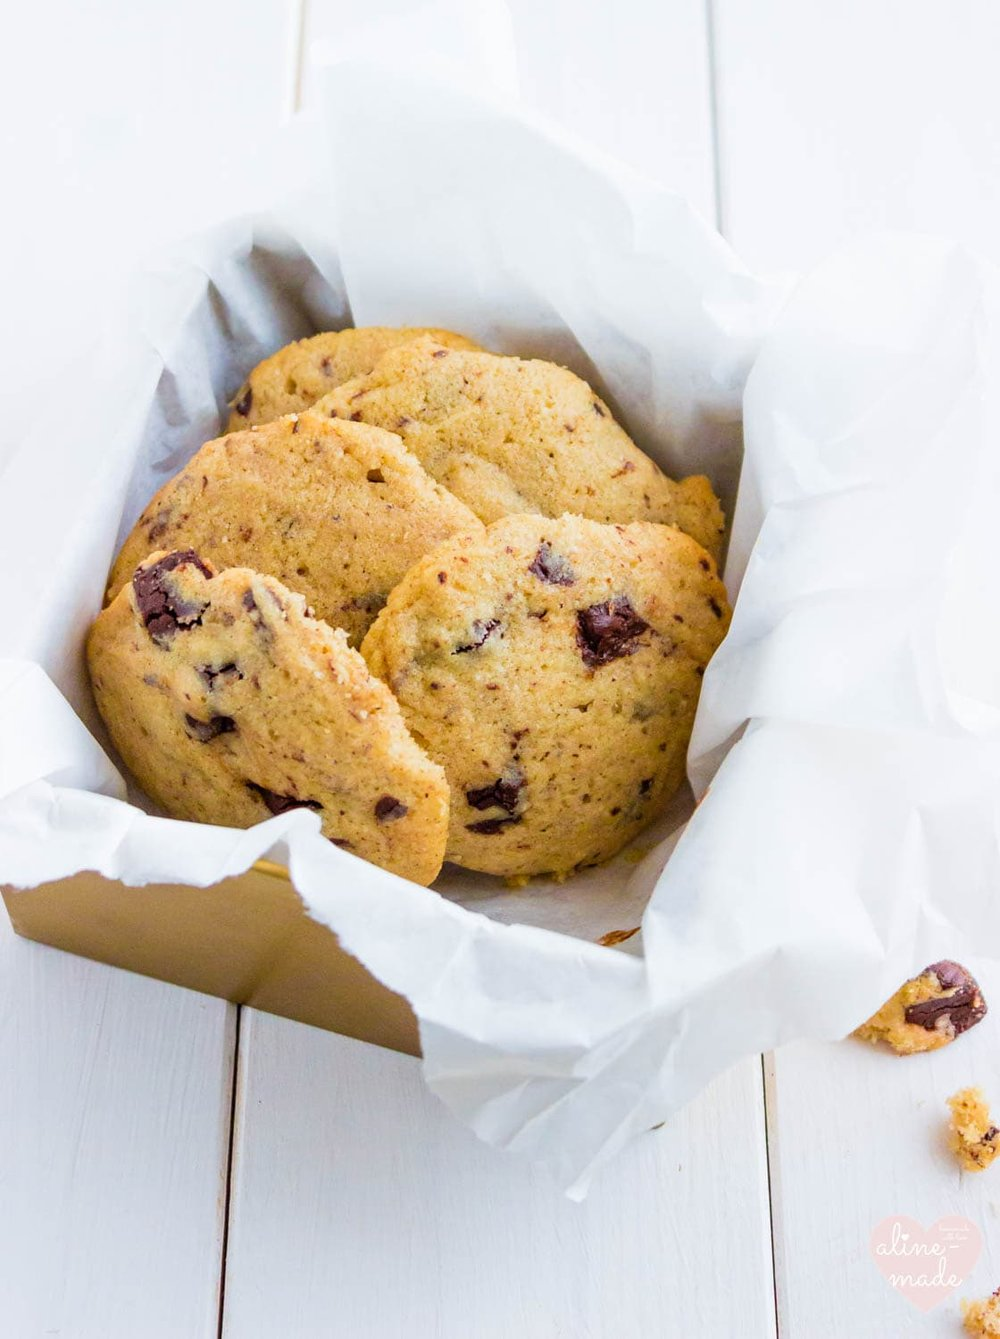 Pecan Butter Chocolate Chip Cookies - Stored in a golden box.